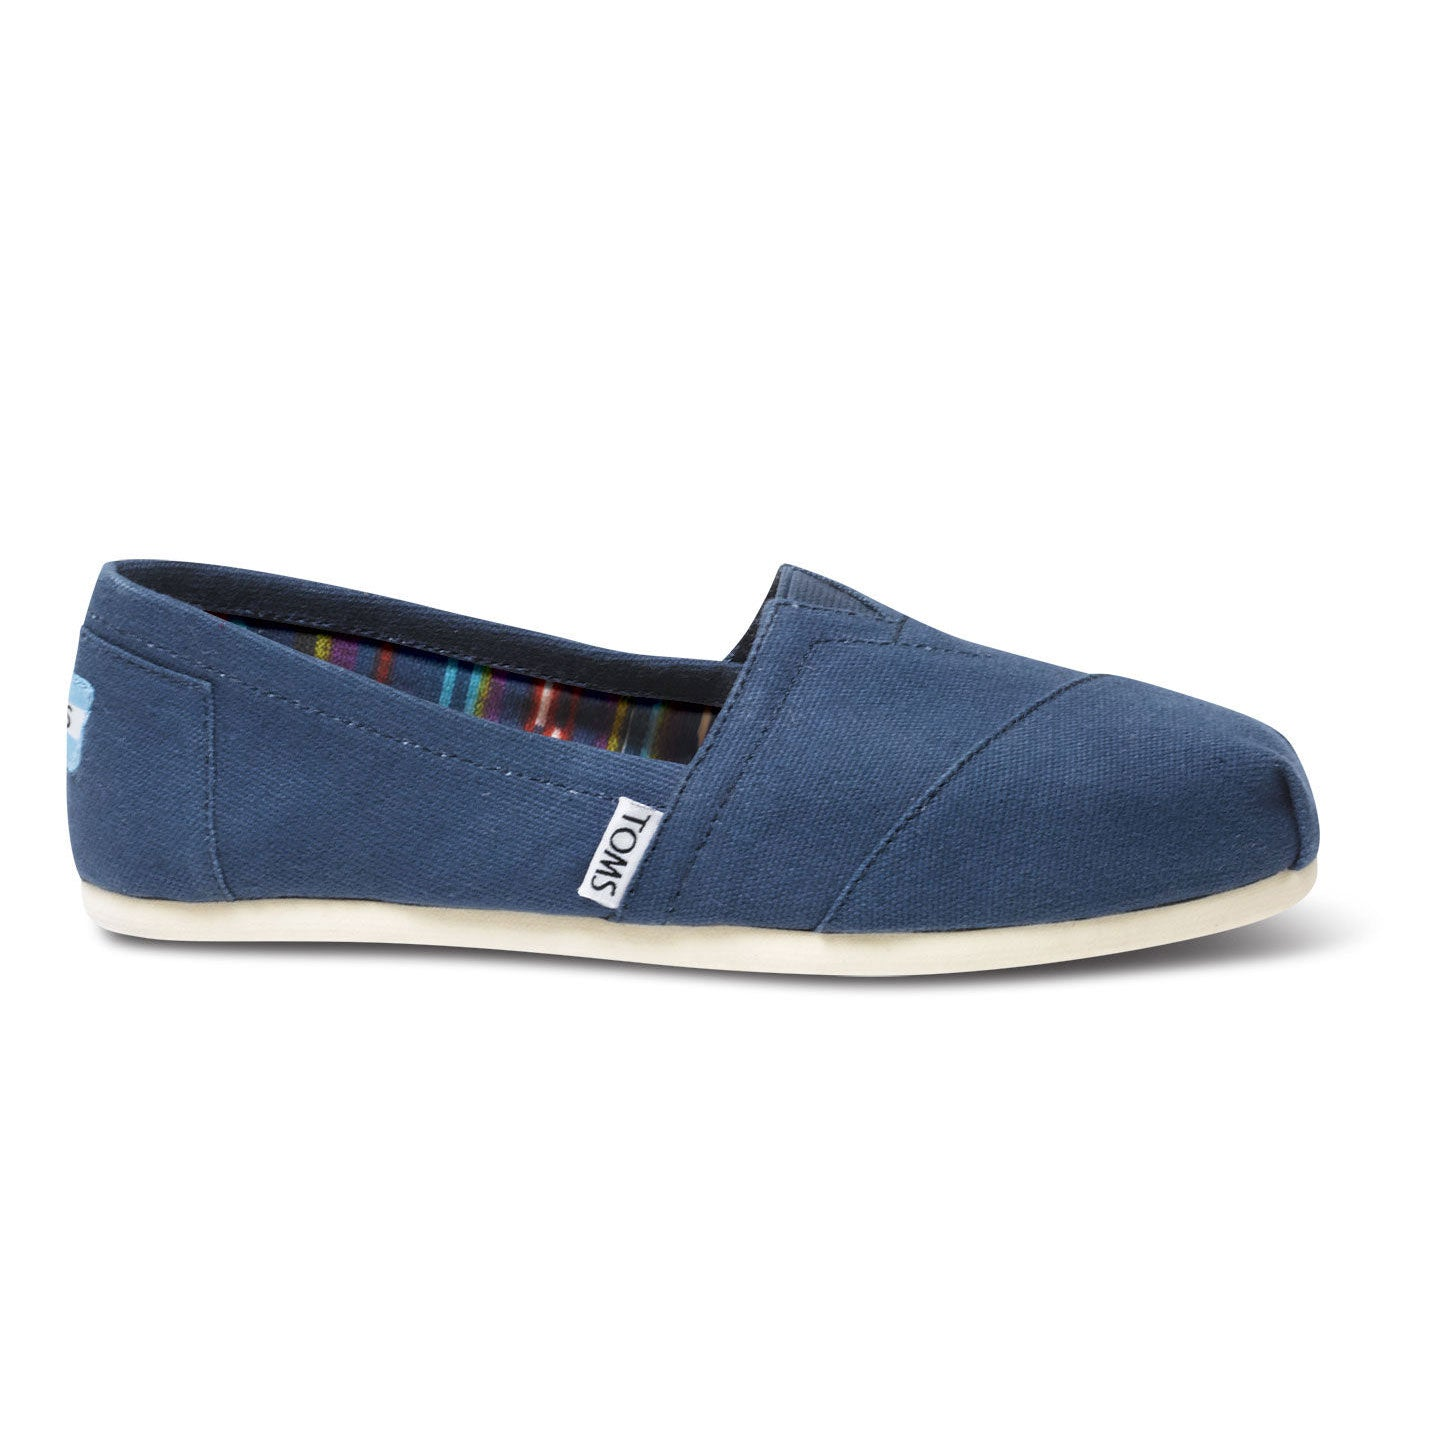 TOMS Womens Classics Canvas Espadrilles Navy Blue